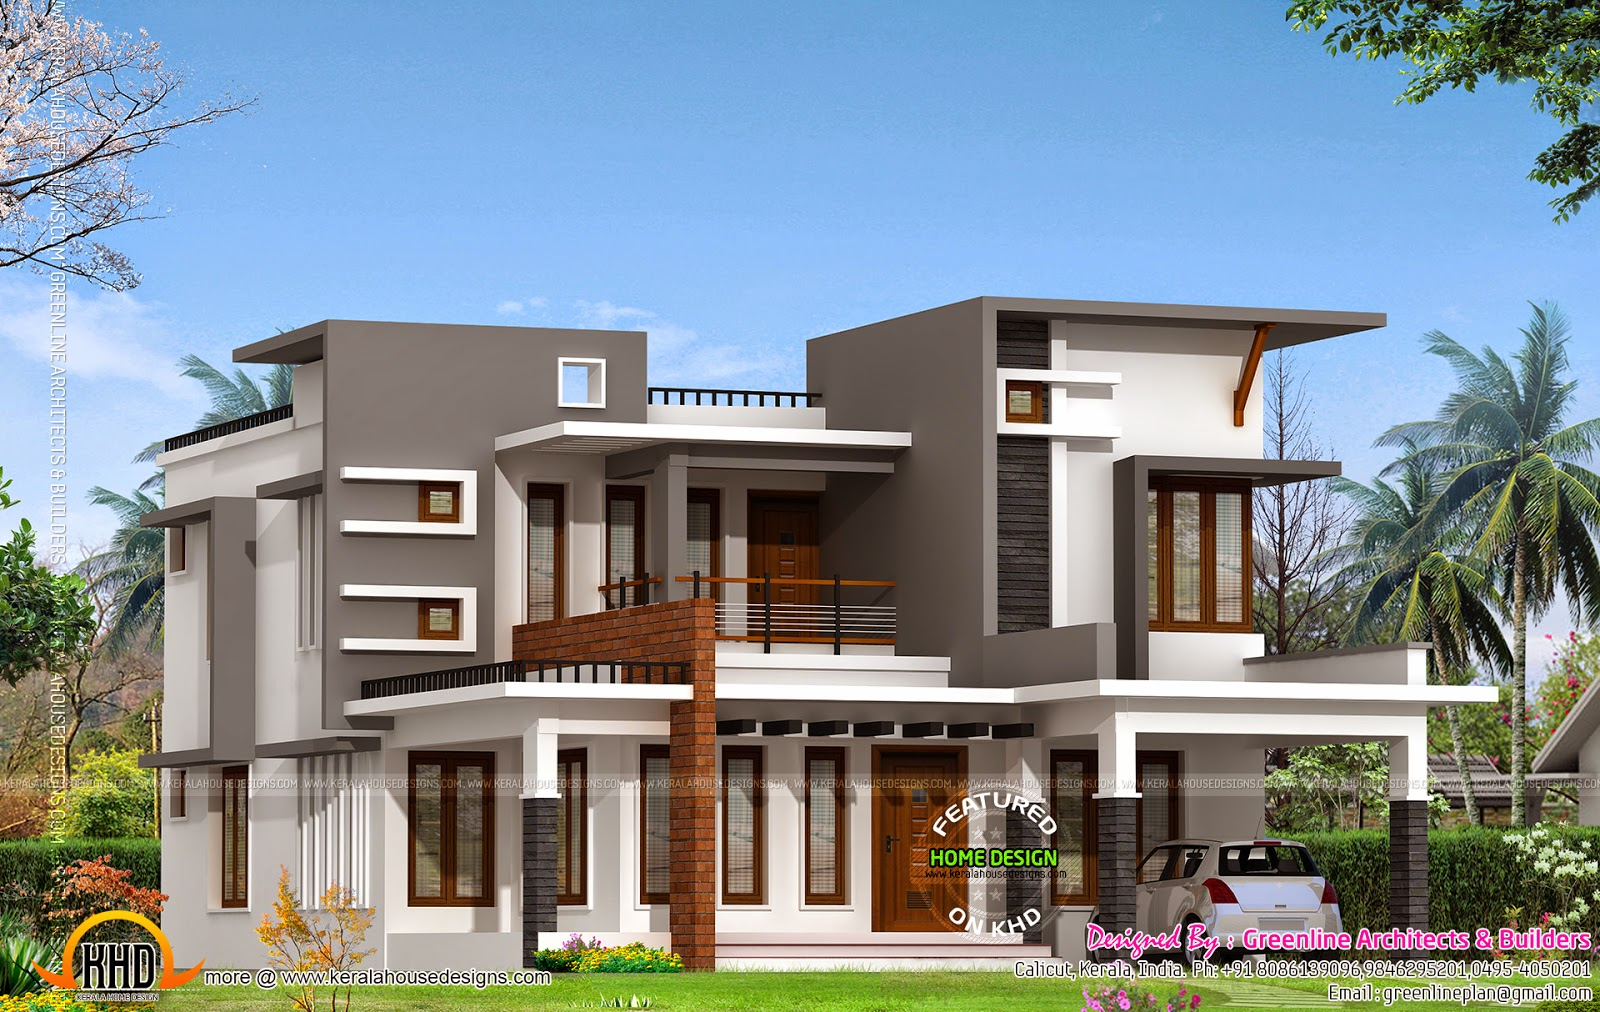 Contemporary house with estimate cost 28 lakhs kerala for Modern house designs and floor plans in india